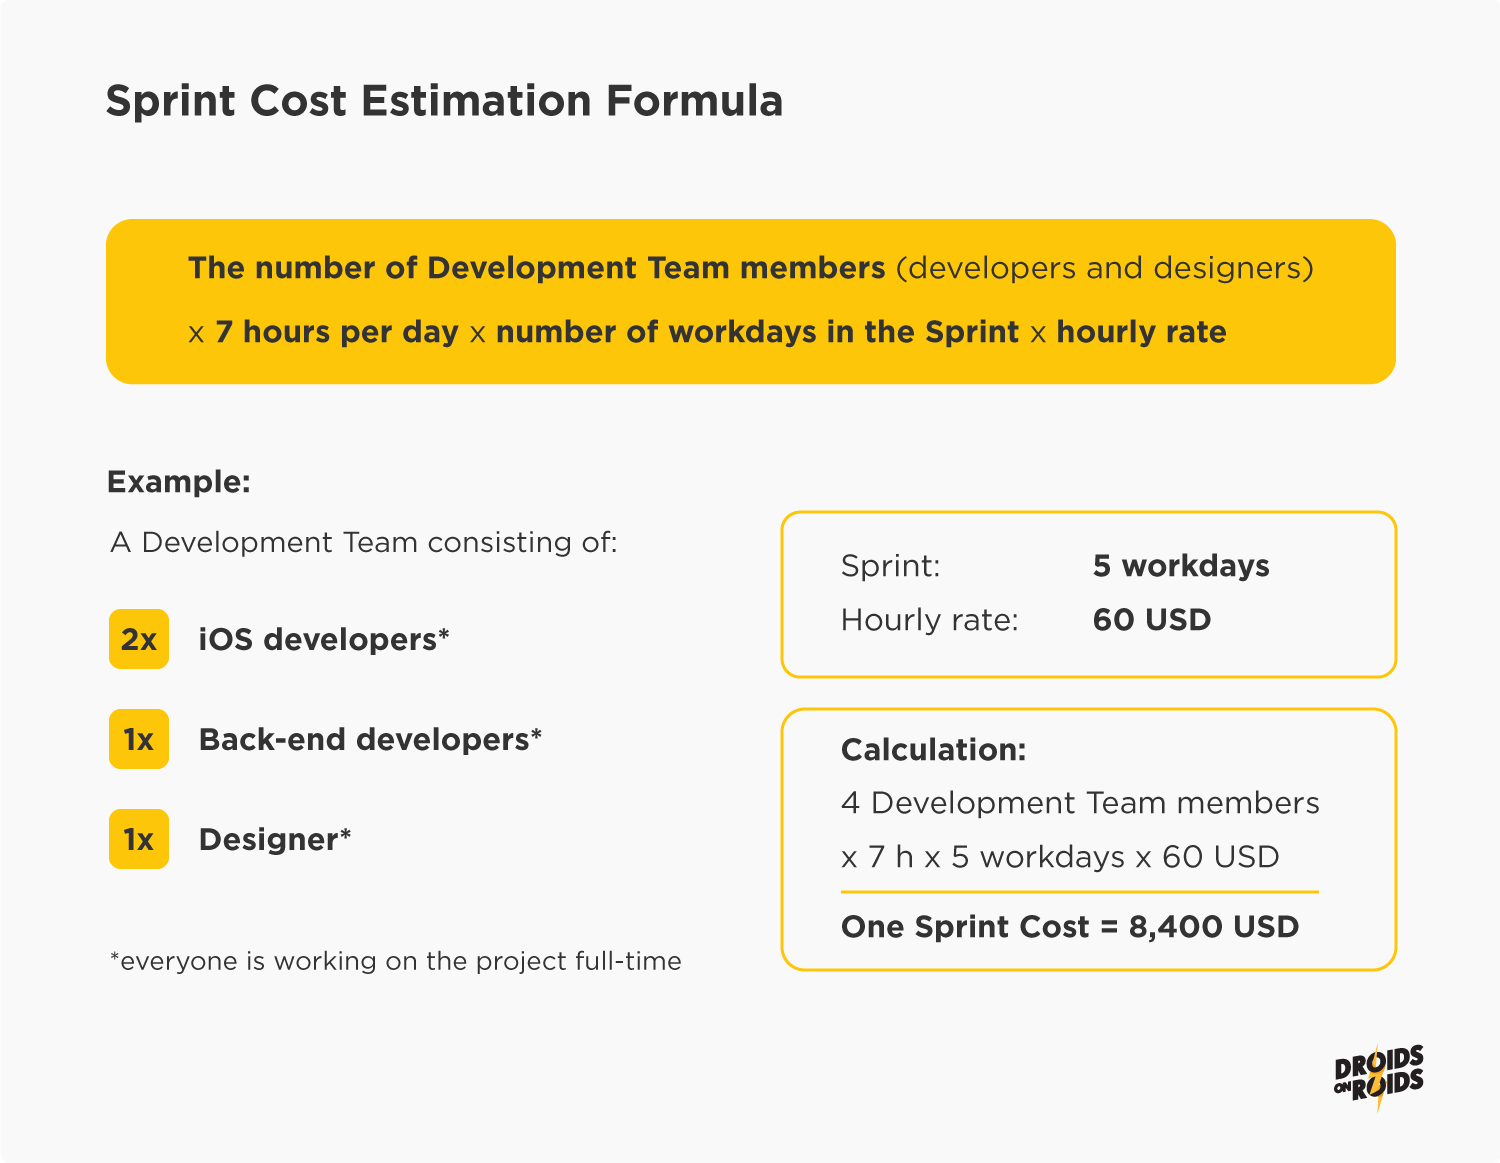 Sprint Cost Estimation Formula - Guide for Product Owners